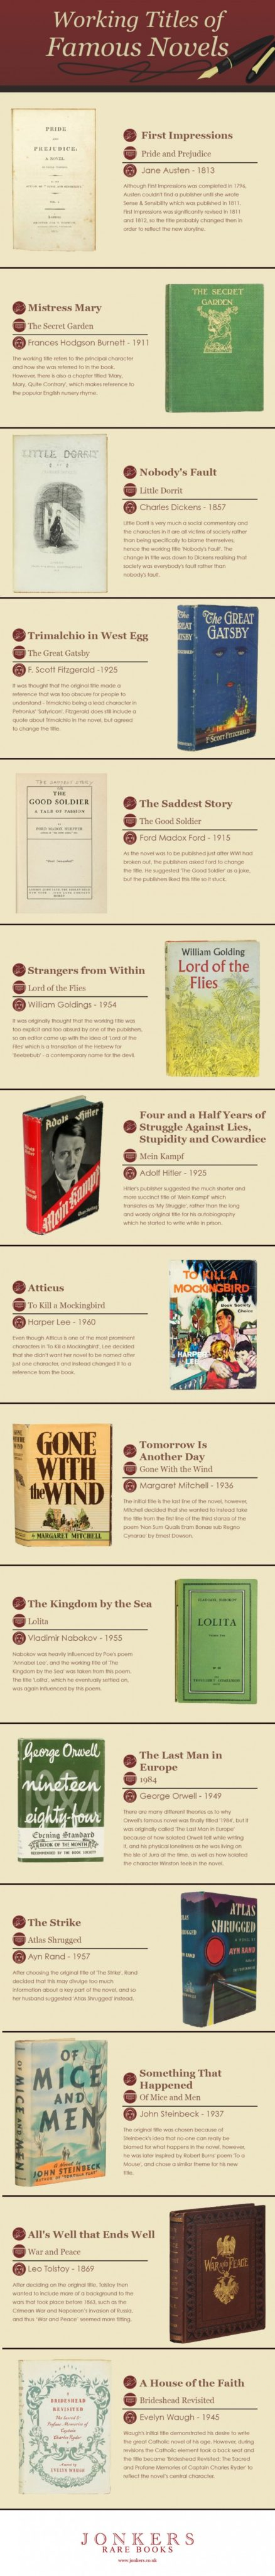 Infographic: Working Titles of Famous Novels Infographic